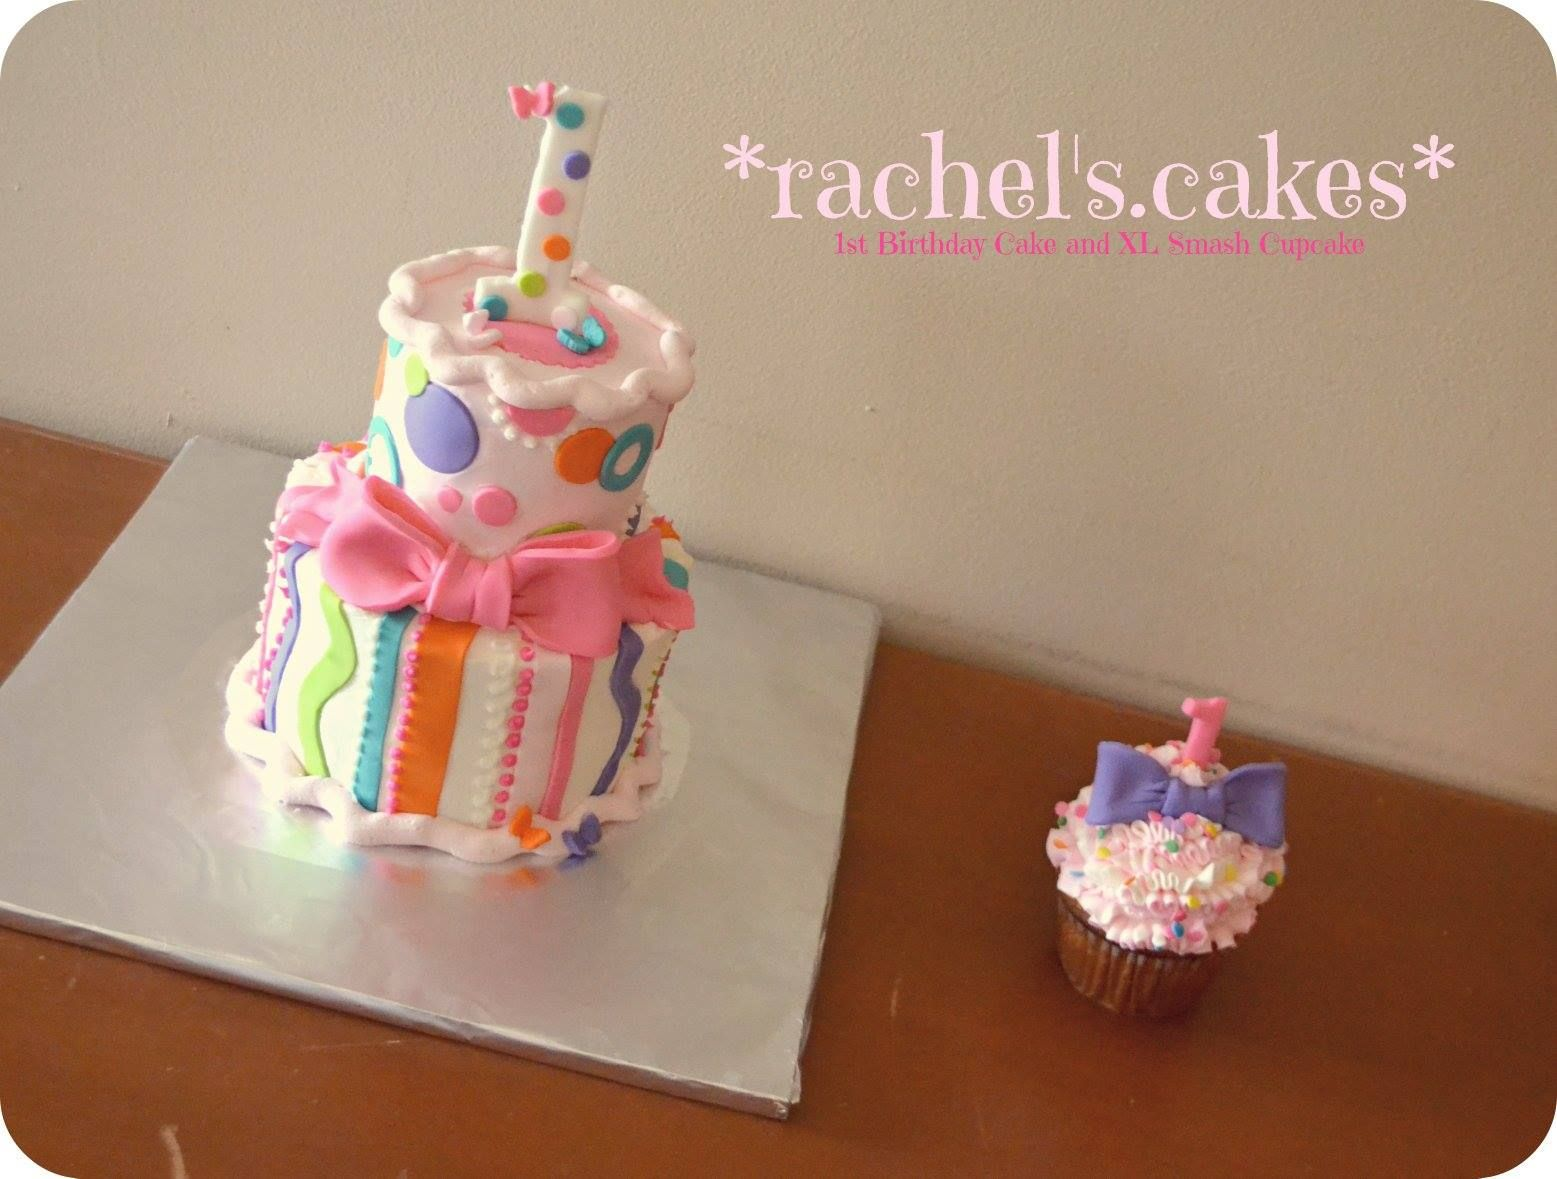 1st birthday cake for a girl httpswwwfacebookcomtherachels